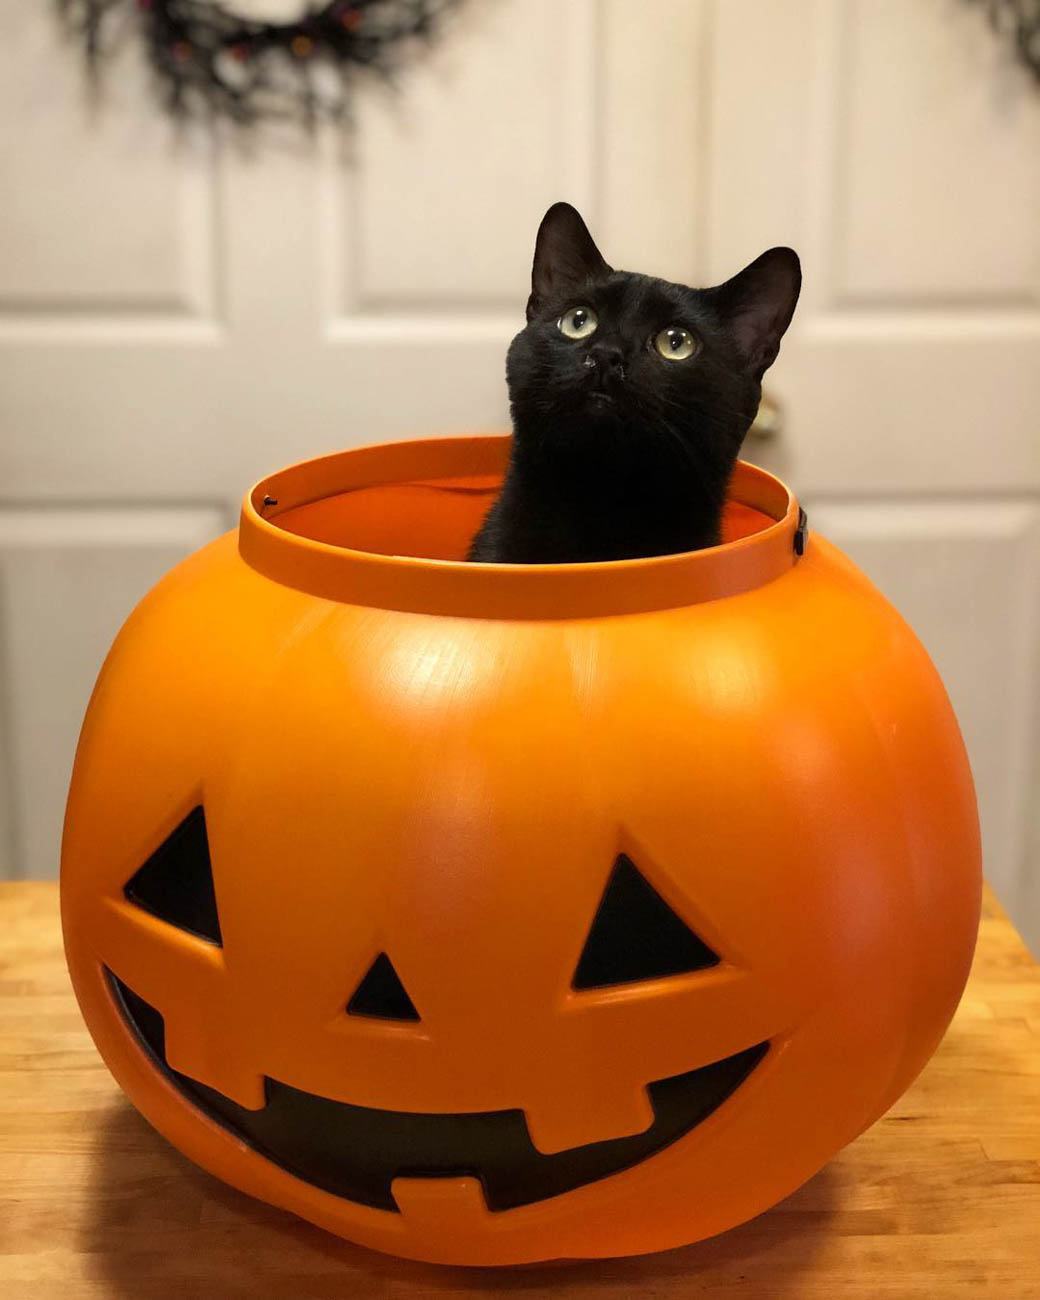 <p>Is there anything more kitty-iconic than a black cat in a pumpkin? We think not. This spooky guy is named Luey, short for Lugosi. / Image courtesy of Instagram user @acurehead // Published: 1.13.19</p>